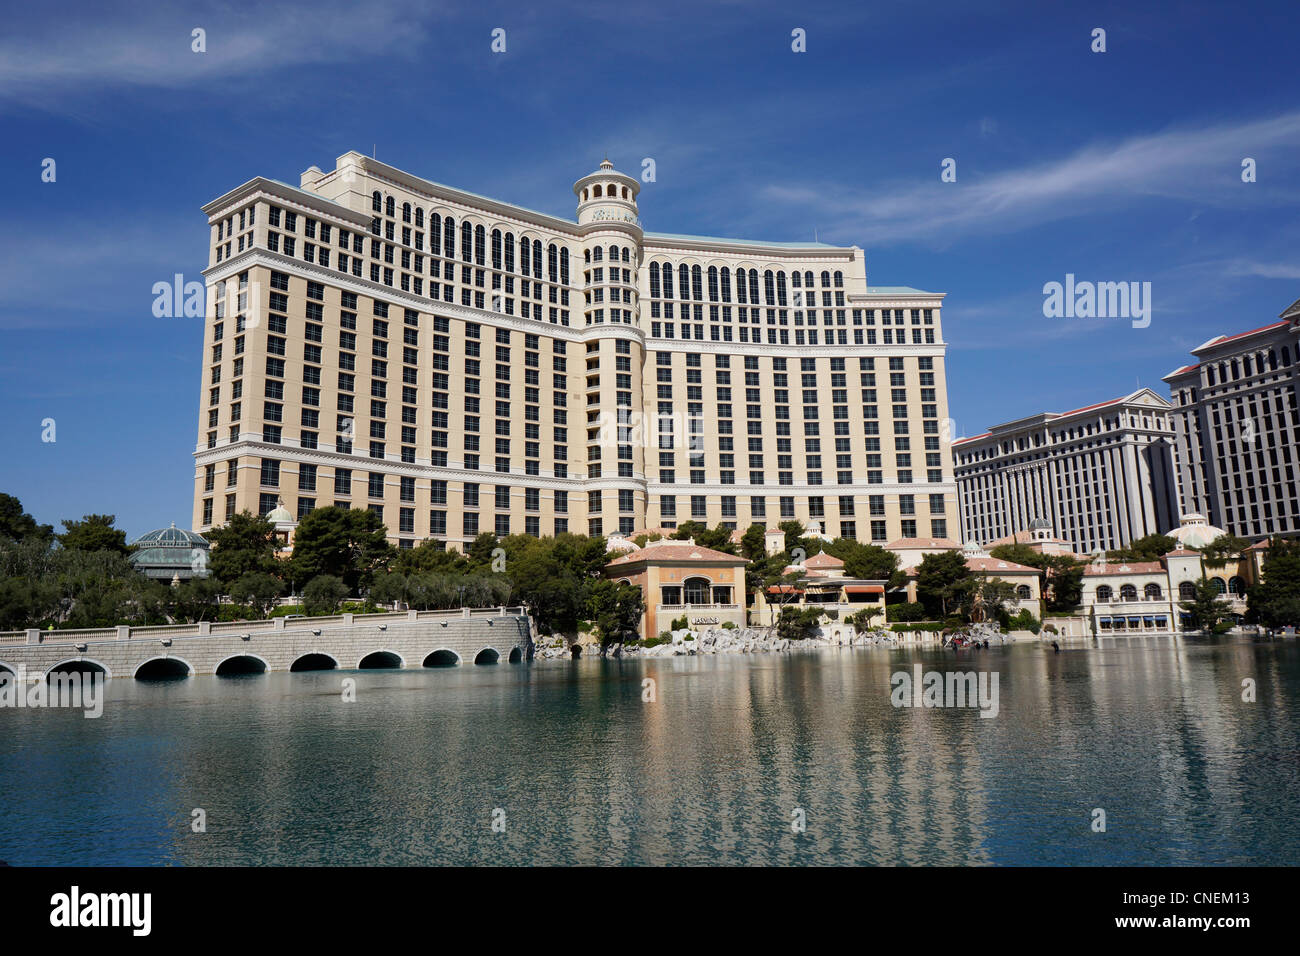 Bellagio Hotel and Casino, Las Vegas, Nevada, USA Photo Stock